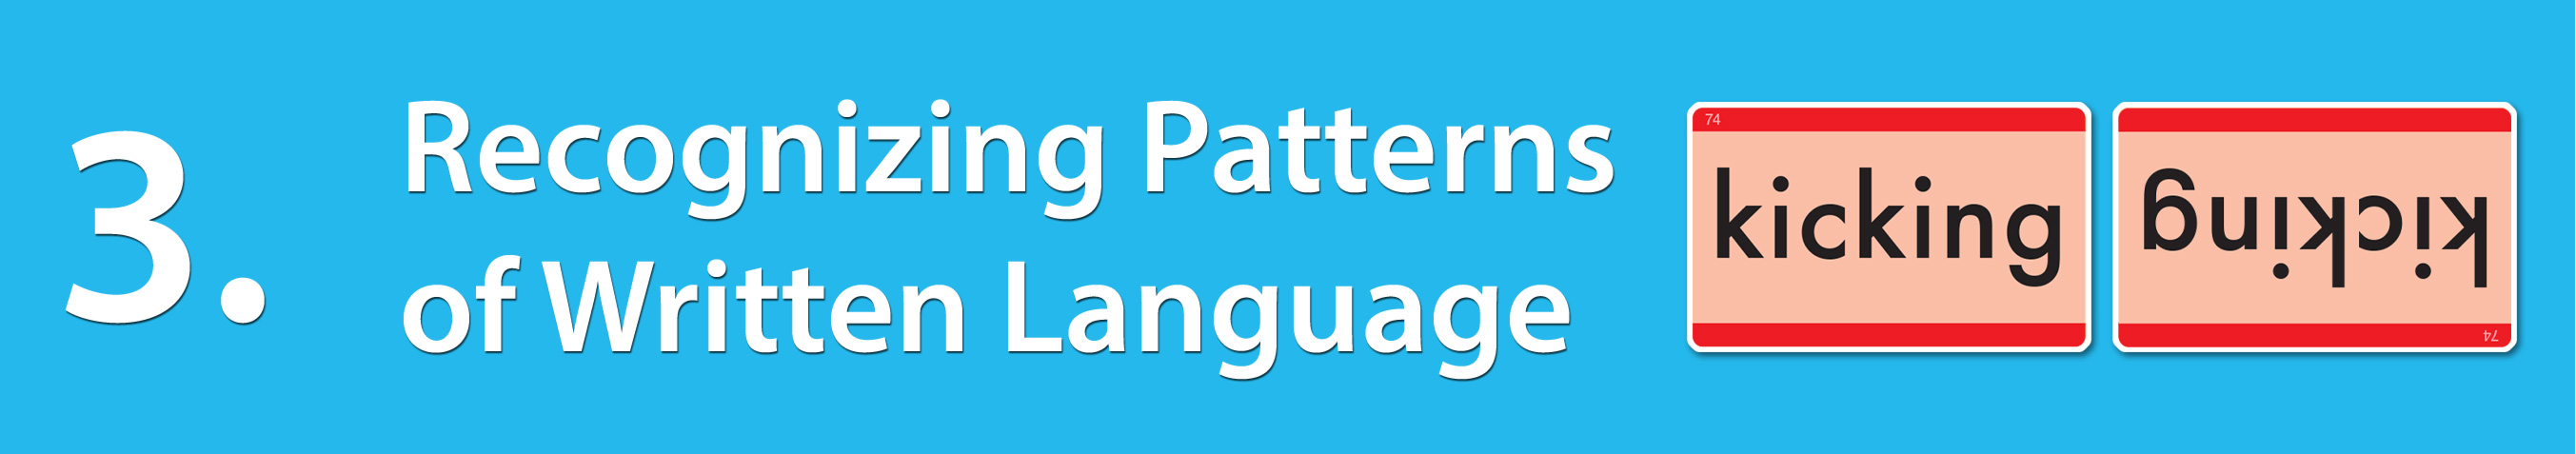 Milestone 3: Recognizing Patterns of the Written Language